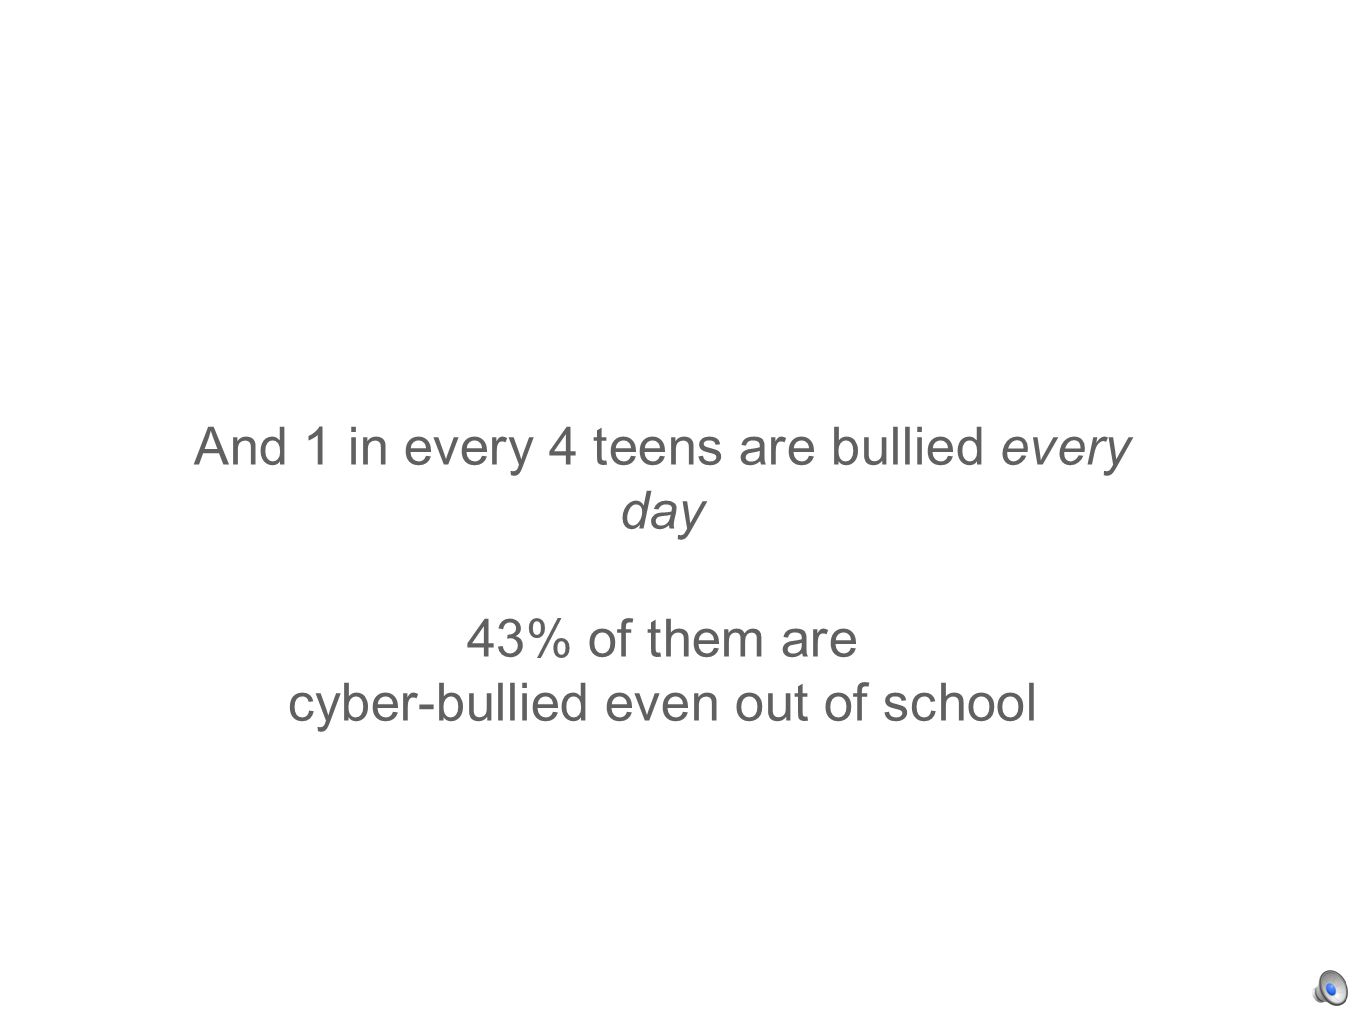 And 1 in every 4 teens are bullied every day 43% of them are cyber-bullied even out of school